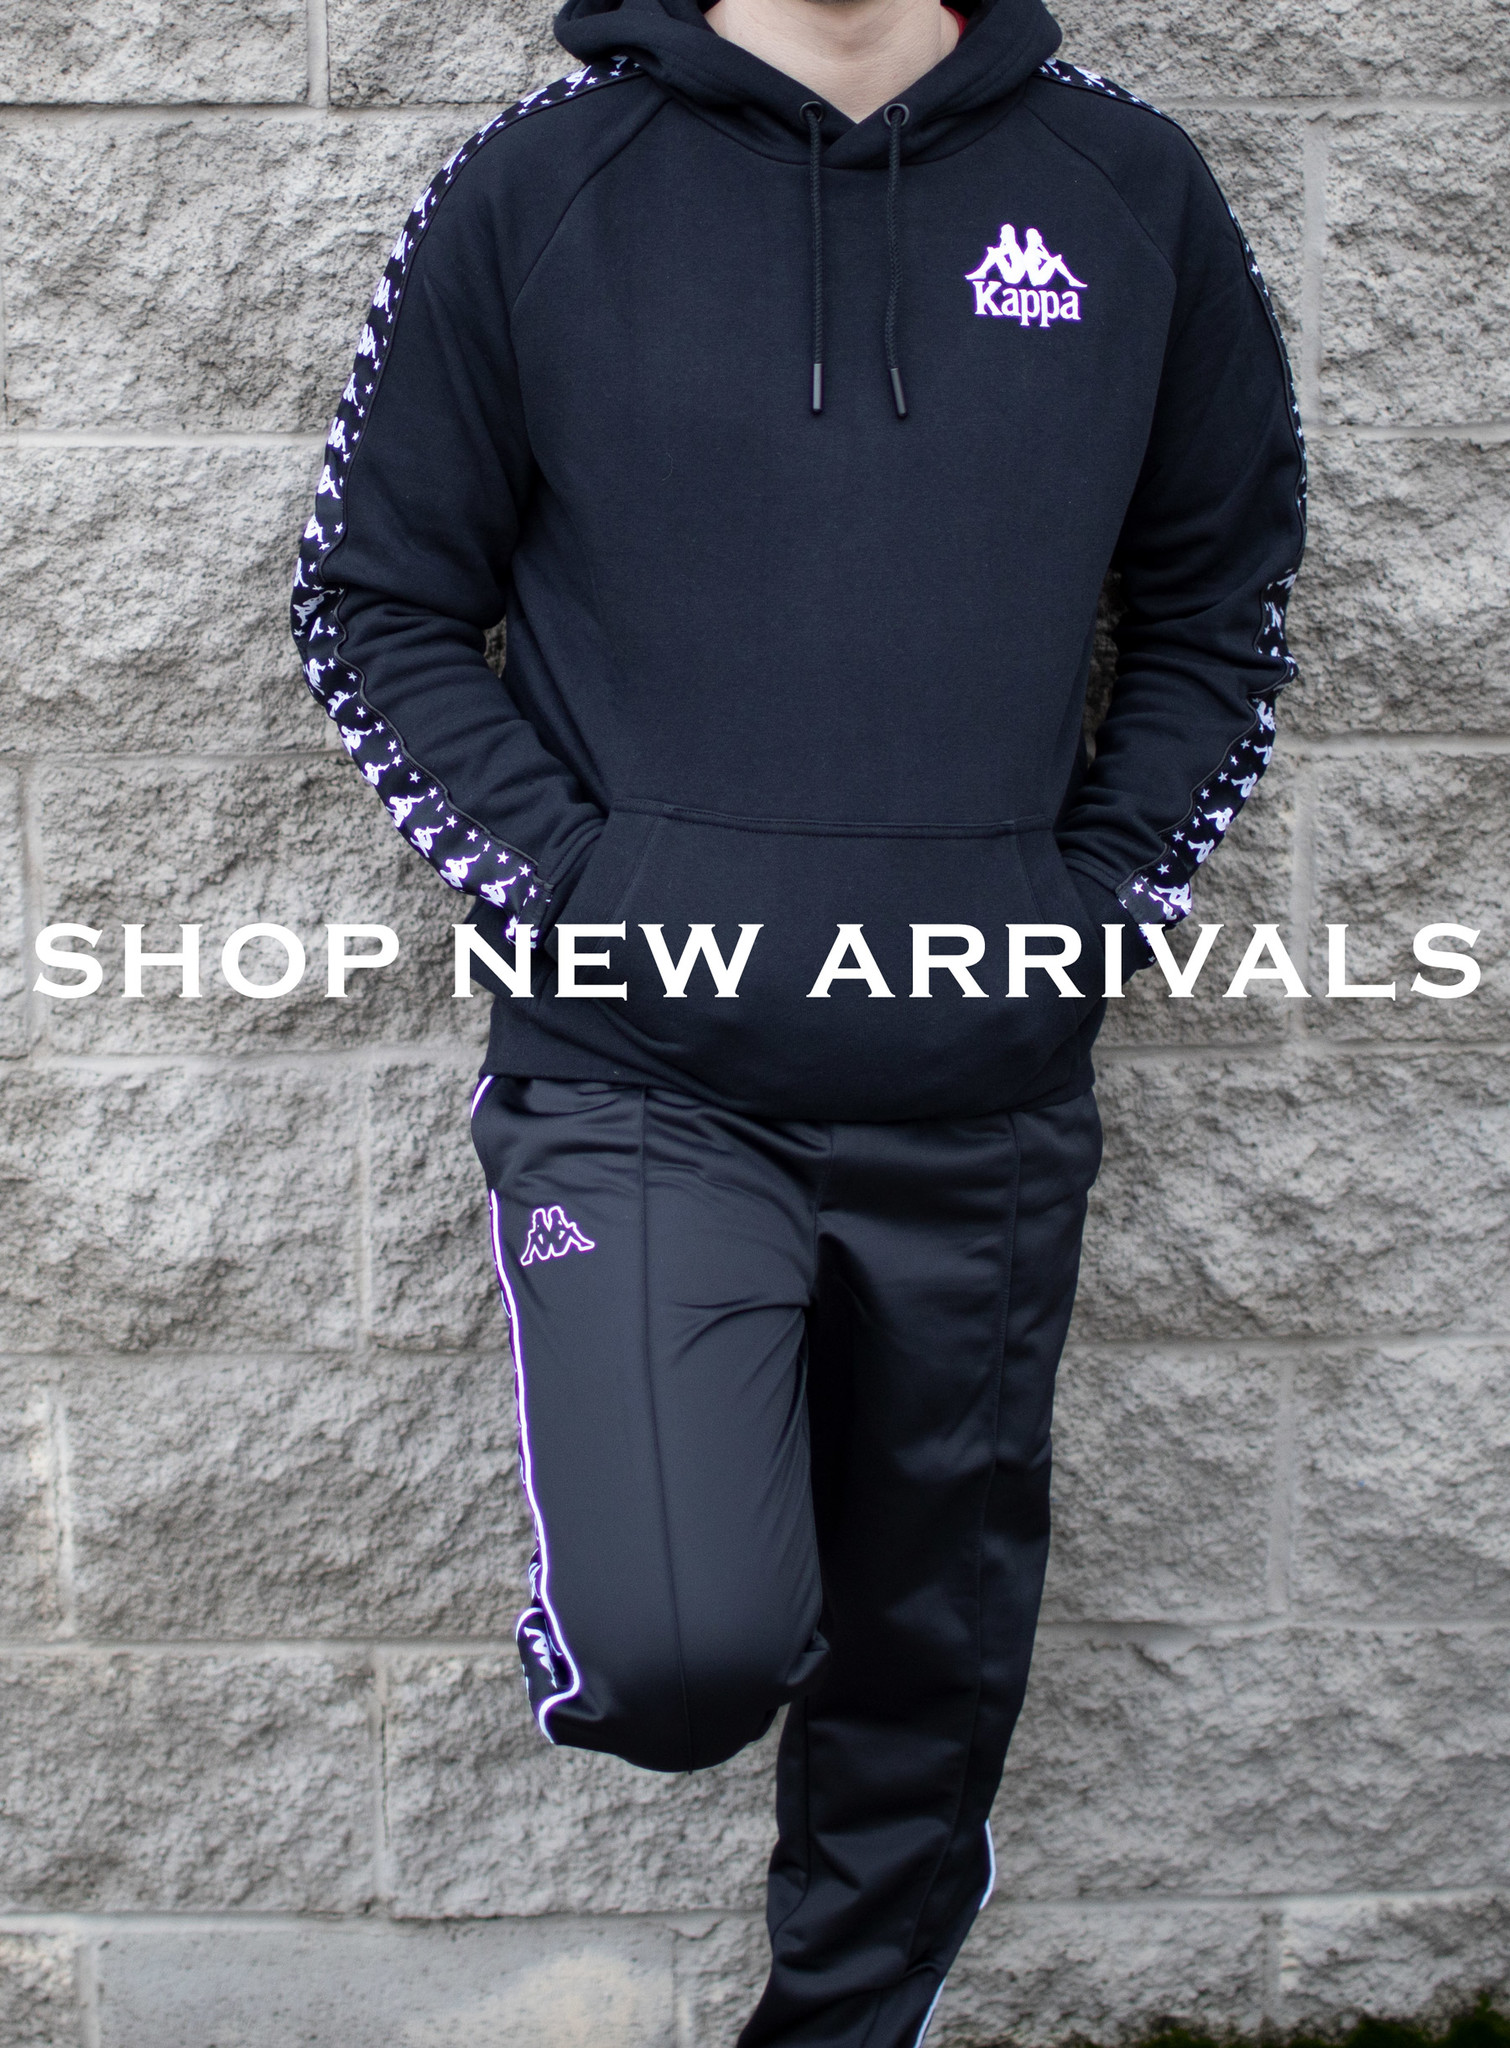 Kappa New Arrivals